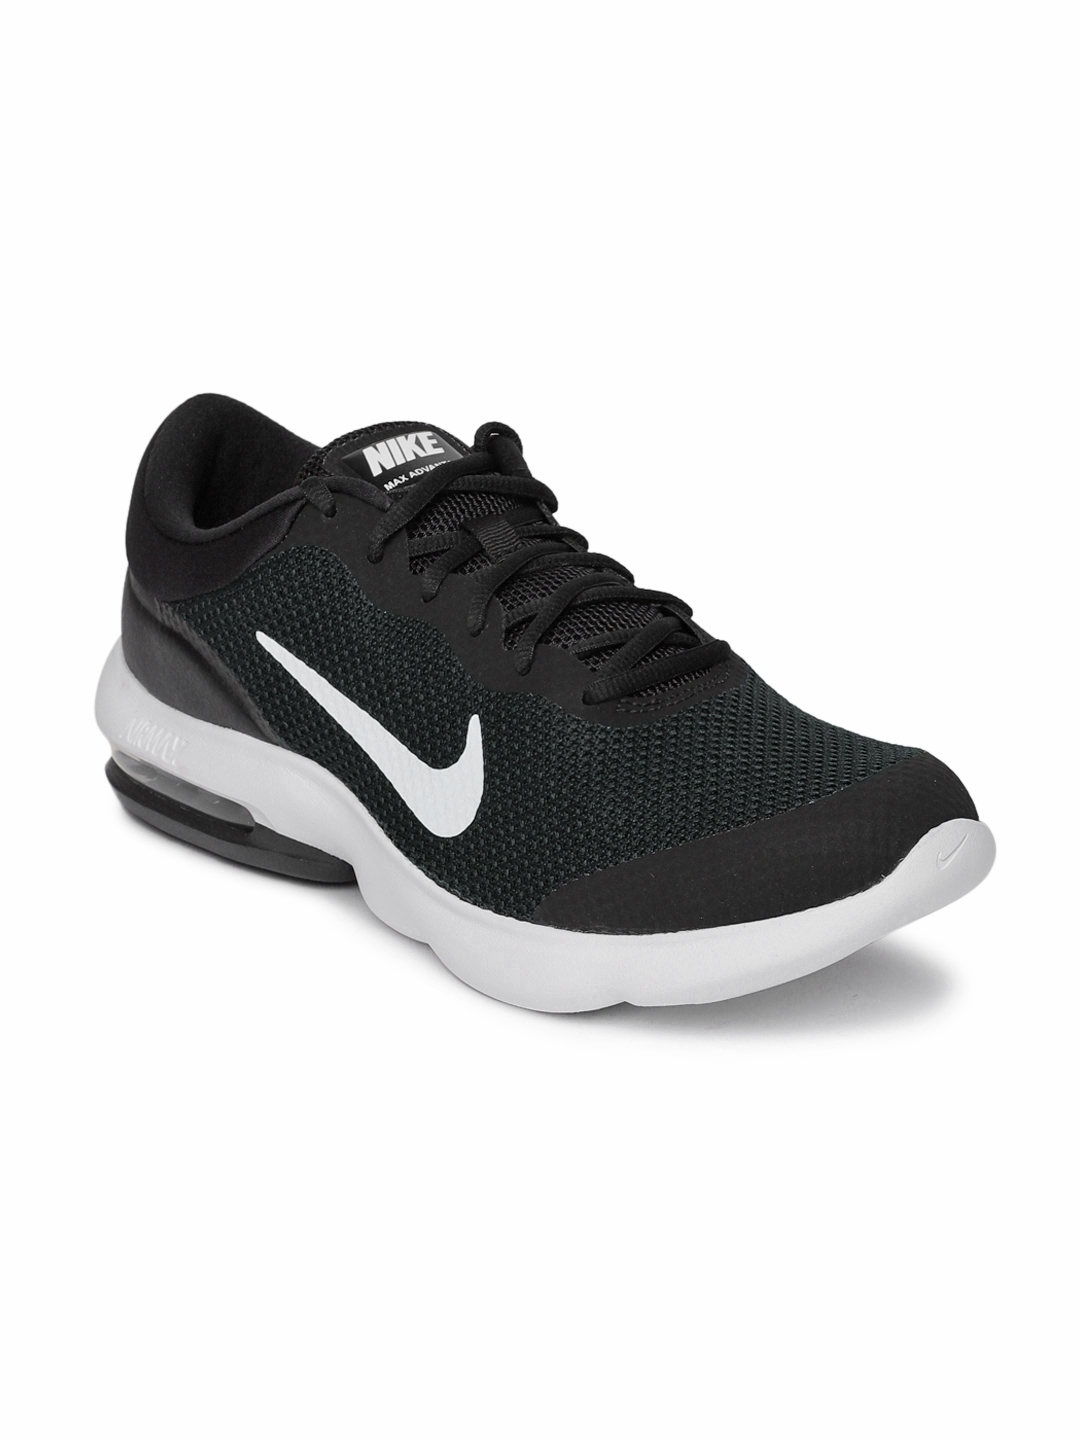 508622191ee Buy Nike Men Black Air Max Advantage Running Shoes - Sports Shoes ...